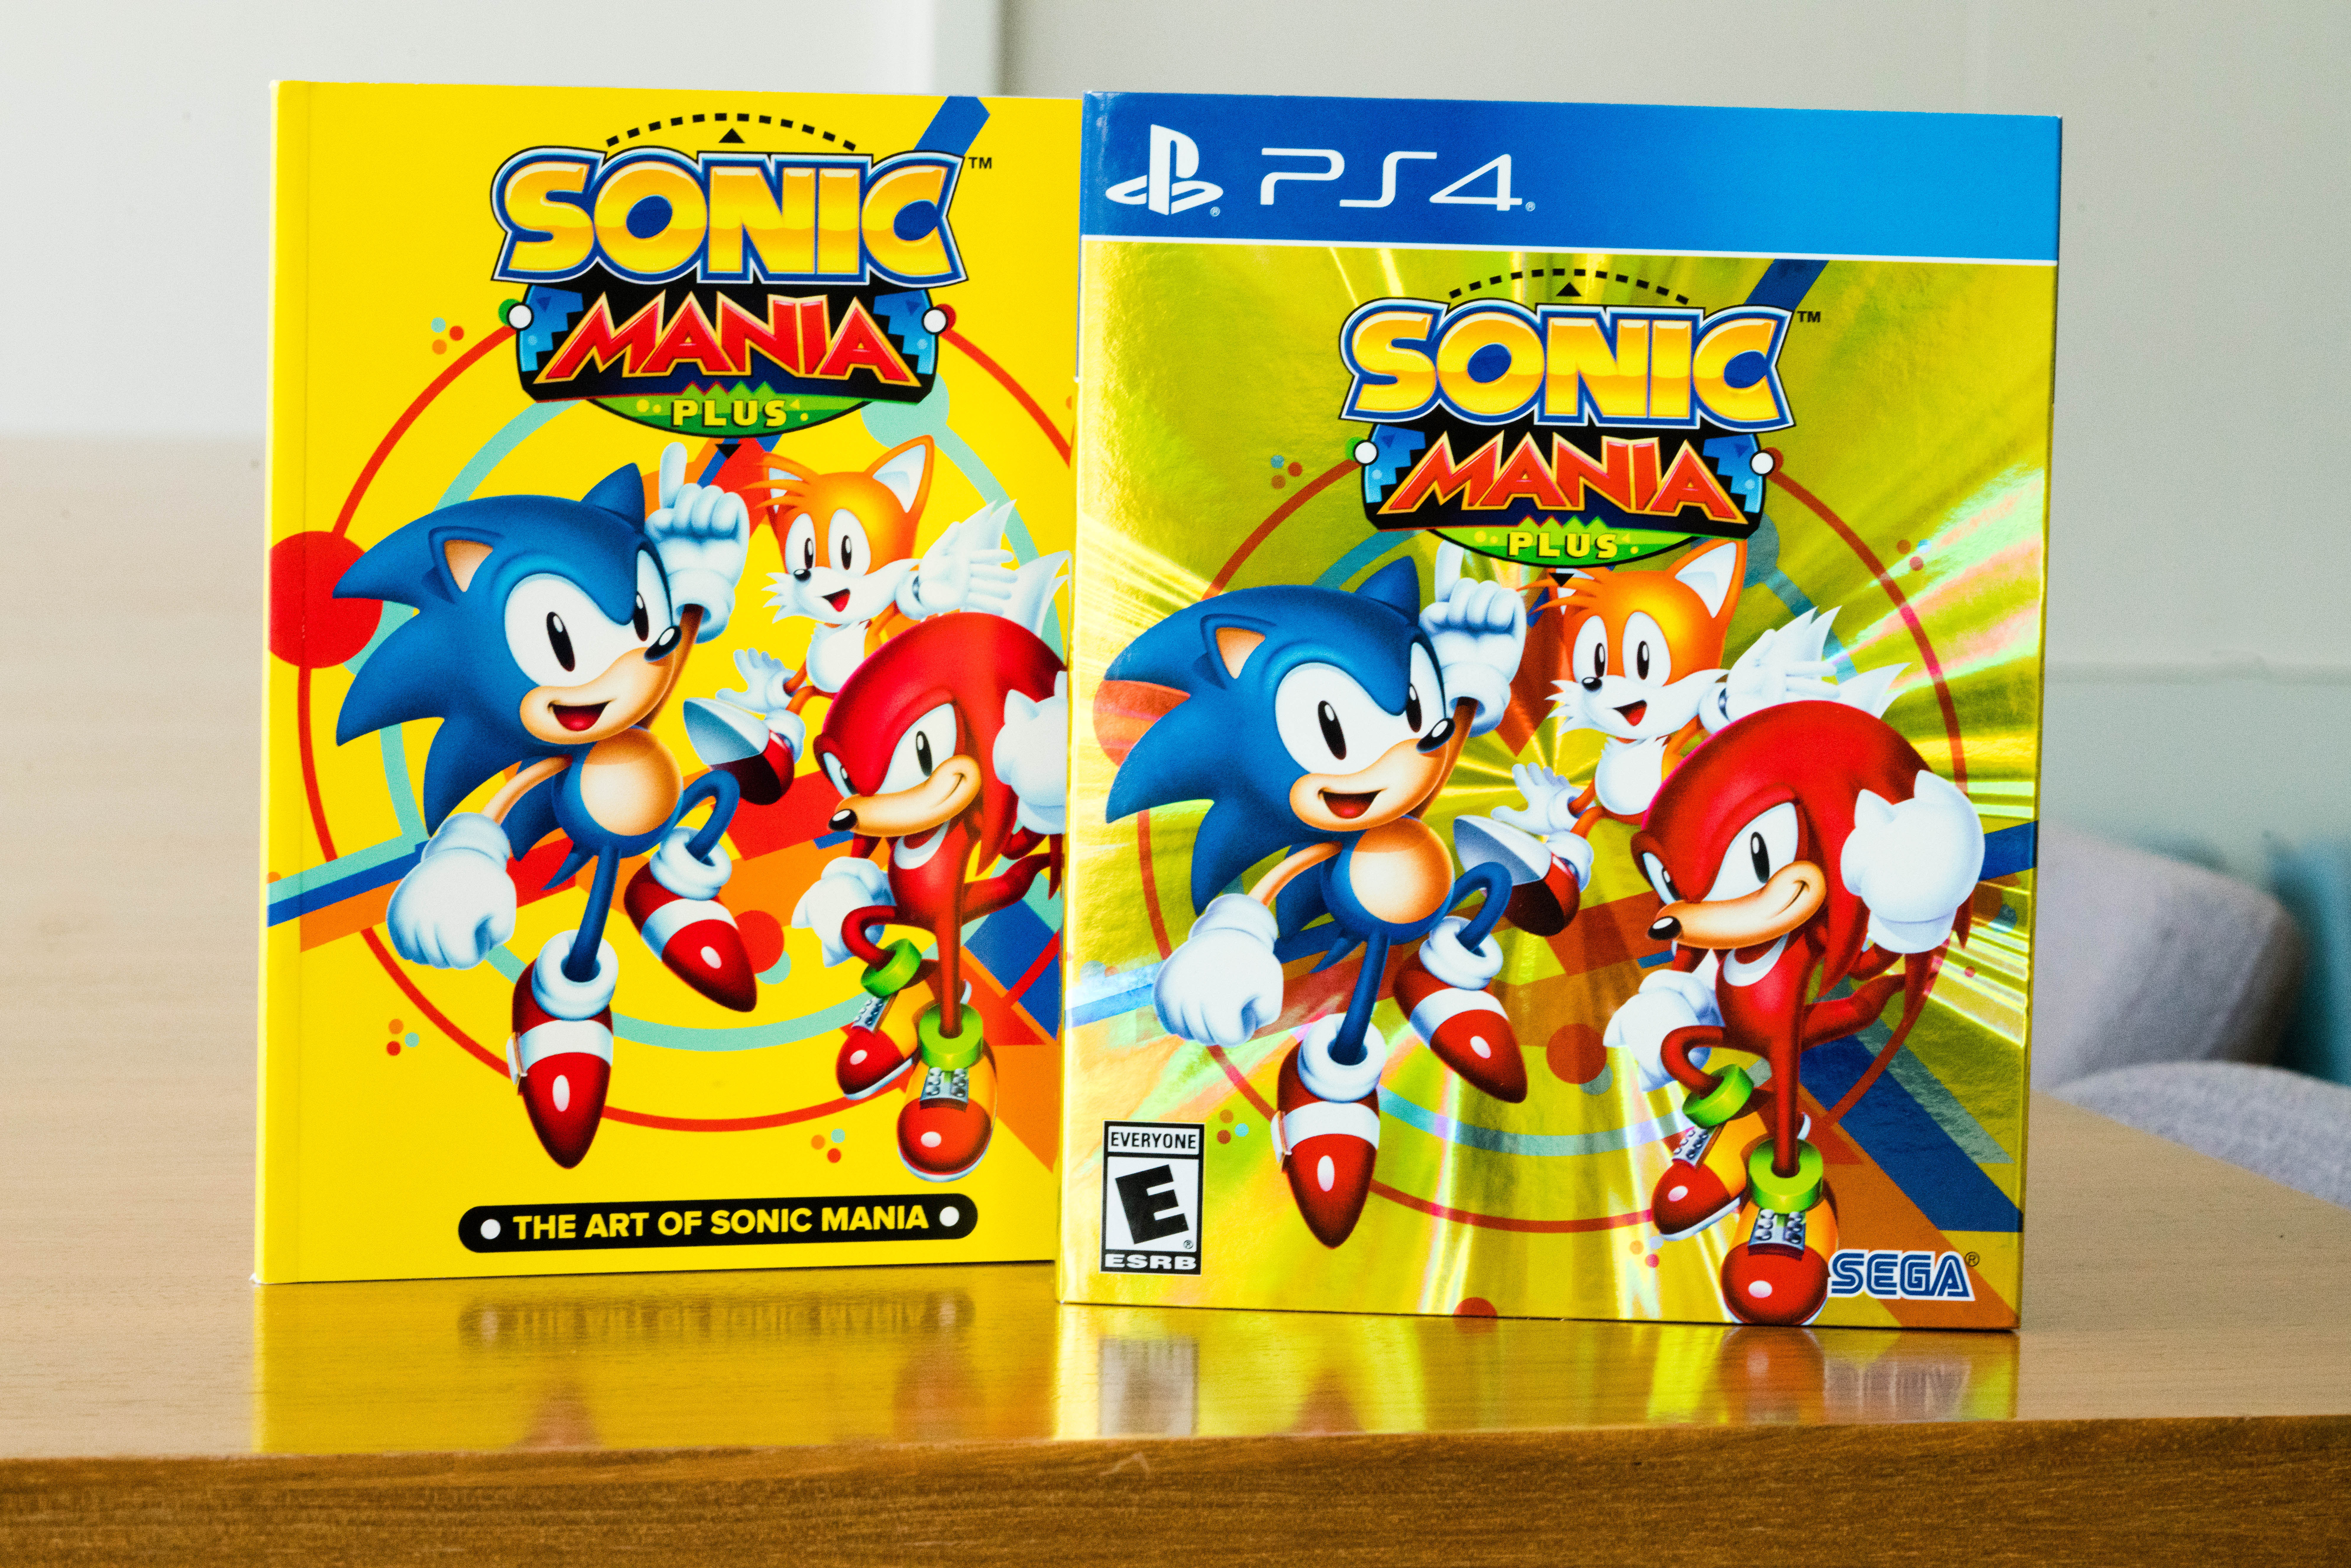 Sonic Mania Plus Drop Dashes To PS4 July 17     PlayStation Blog Sonic Mania Plus Collector s Edition